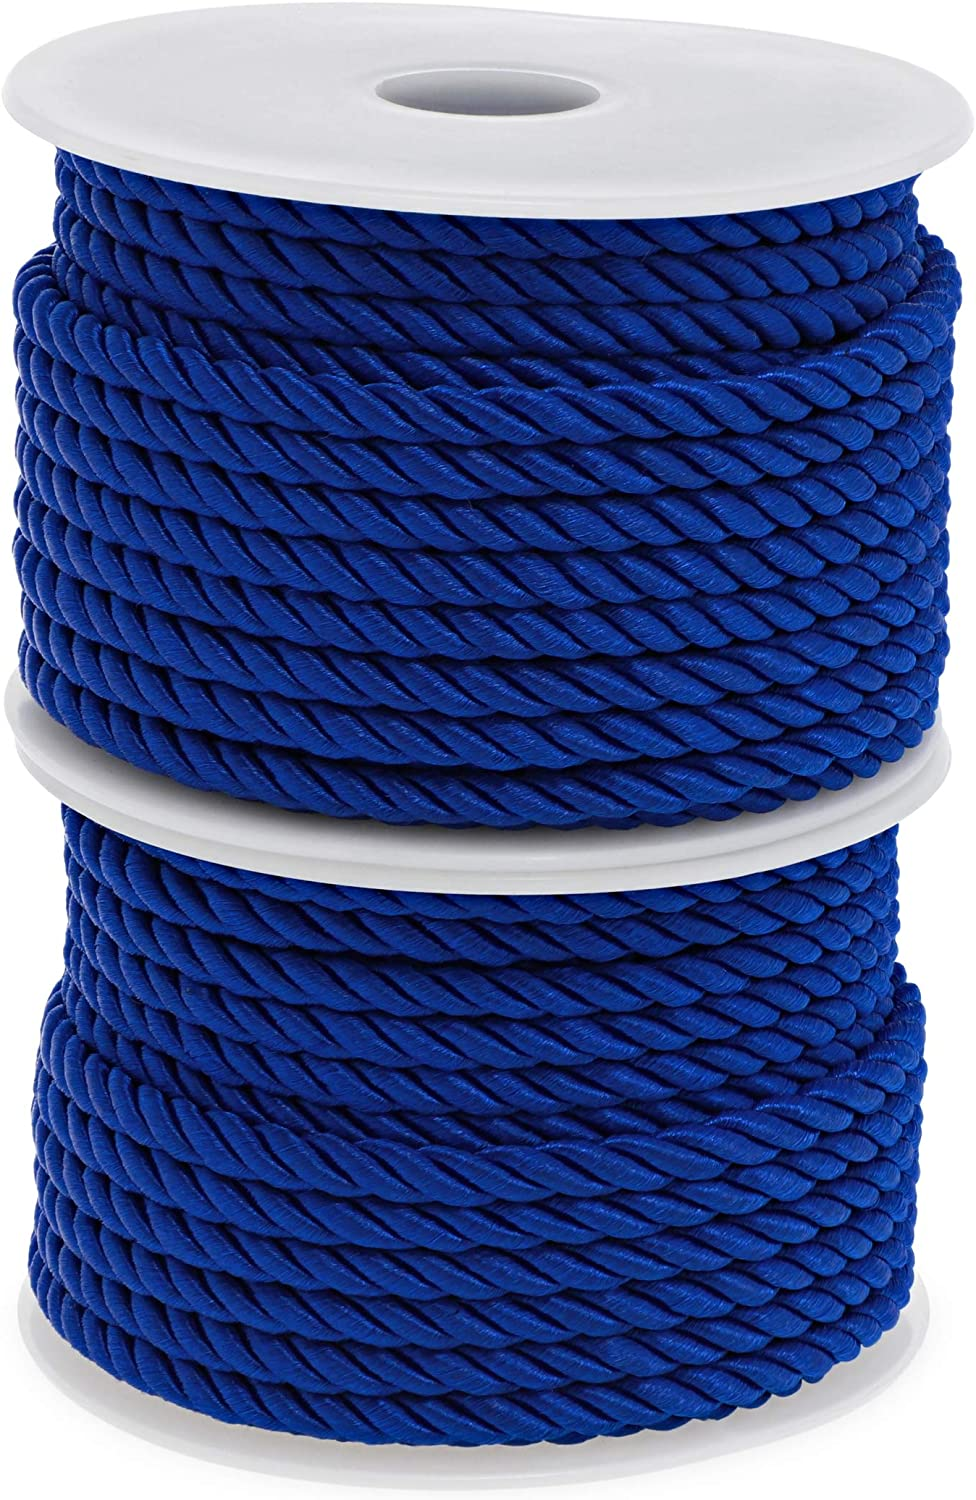 18 Yards, Blue, 2 Pack Nylon Twisted Cord Trim Rope